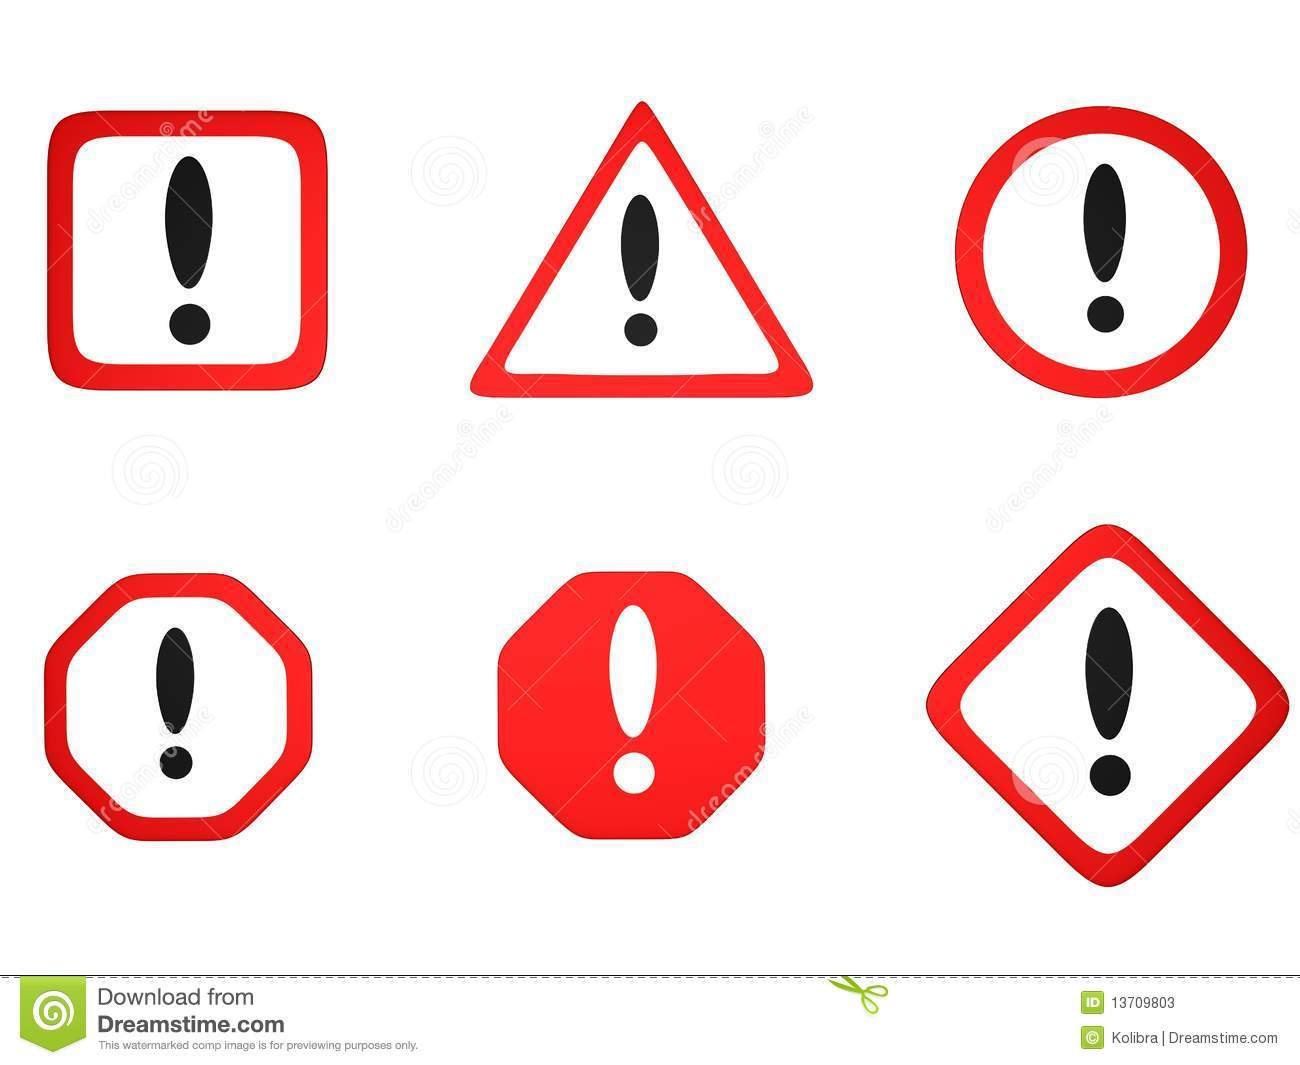 A Road Sign With Exclamation Mark Stock Photos  Image. Joy Signs. Boy Room Signs Of Stroke. Pneumocystis Jirovecii Signs. Statistic Signs Of Stroke. Oak Signs Of Stroke. Newspaper Signs Of Stroke. Hydatid Liver Signs Of Stroke. Functional Outcome Signs Of Stroke